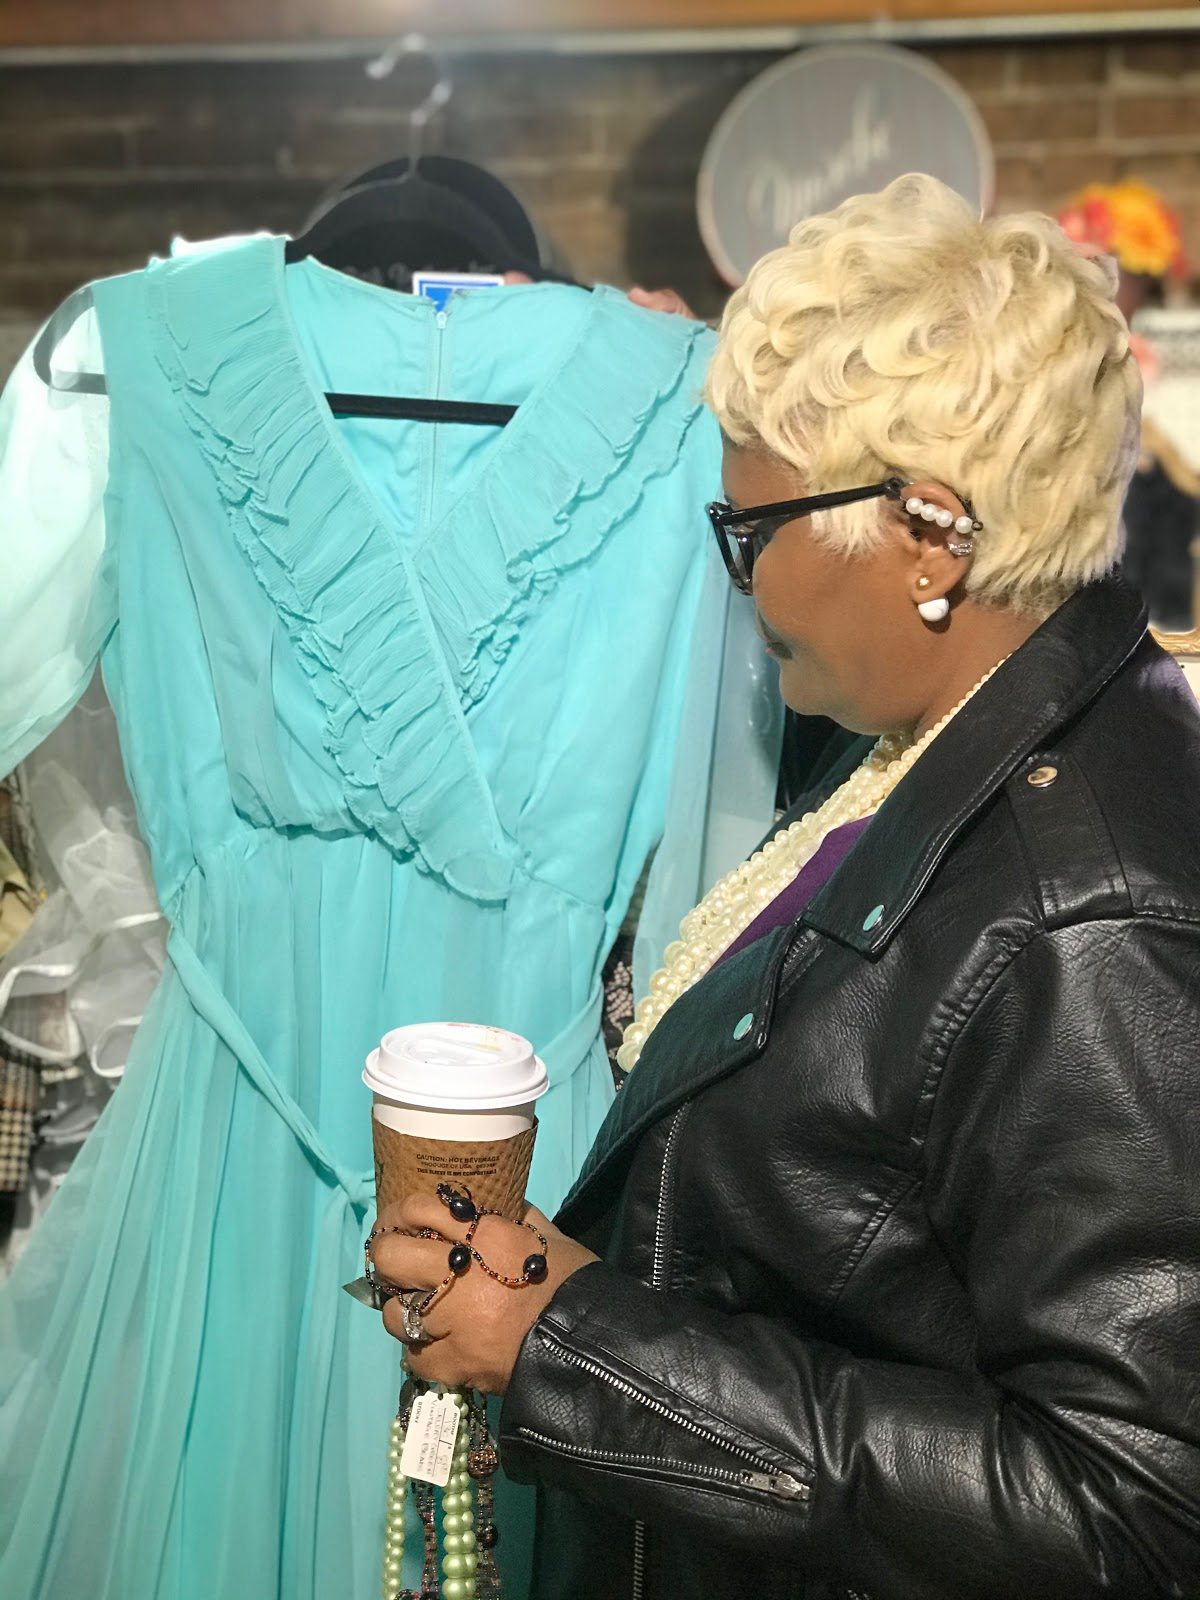 Being Forty Something: Tangie Bell is shopping alone and trying on a blue dress. Shopping Alone + Babbling About Aging With Grace!